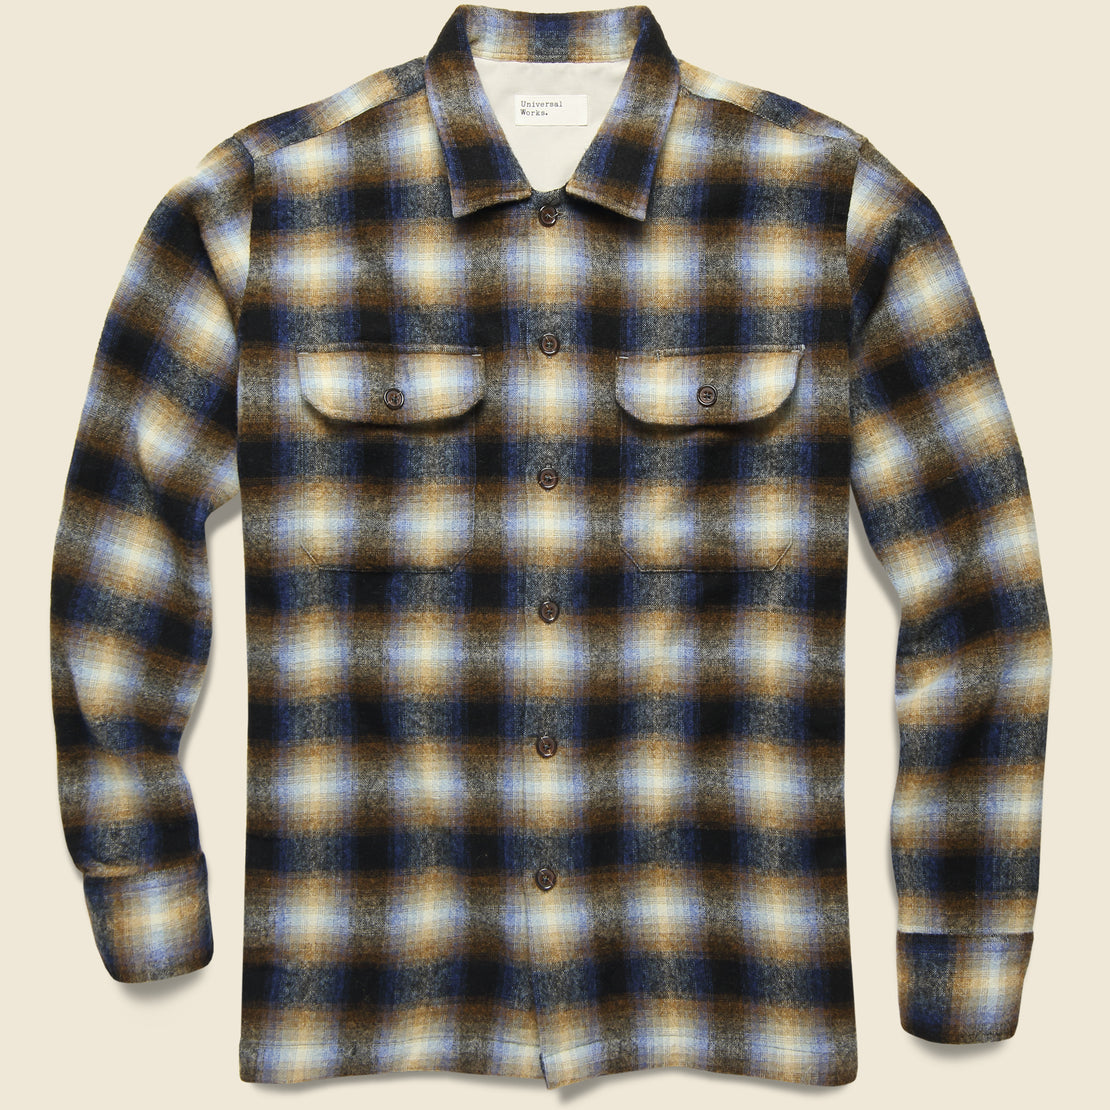 Universal Works Utility Shirt - Navy Check